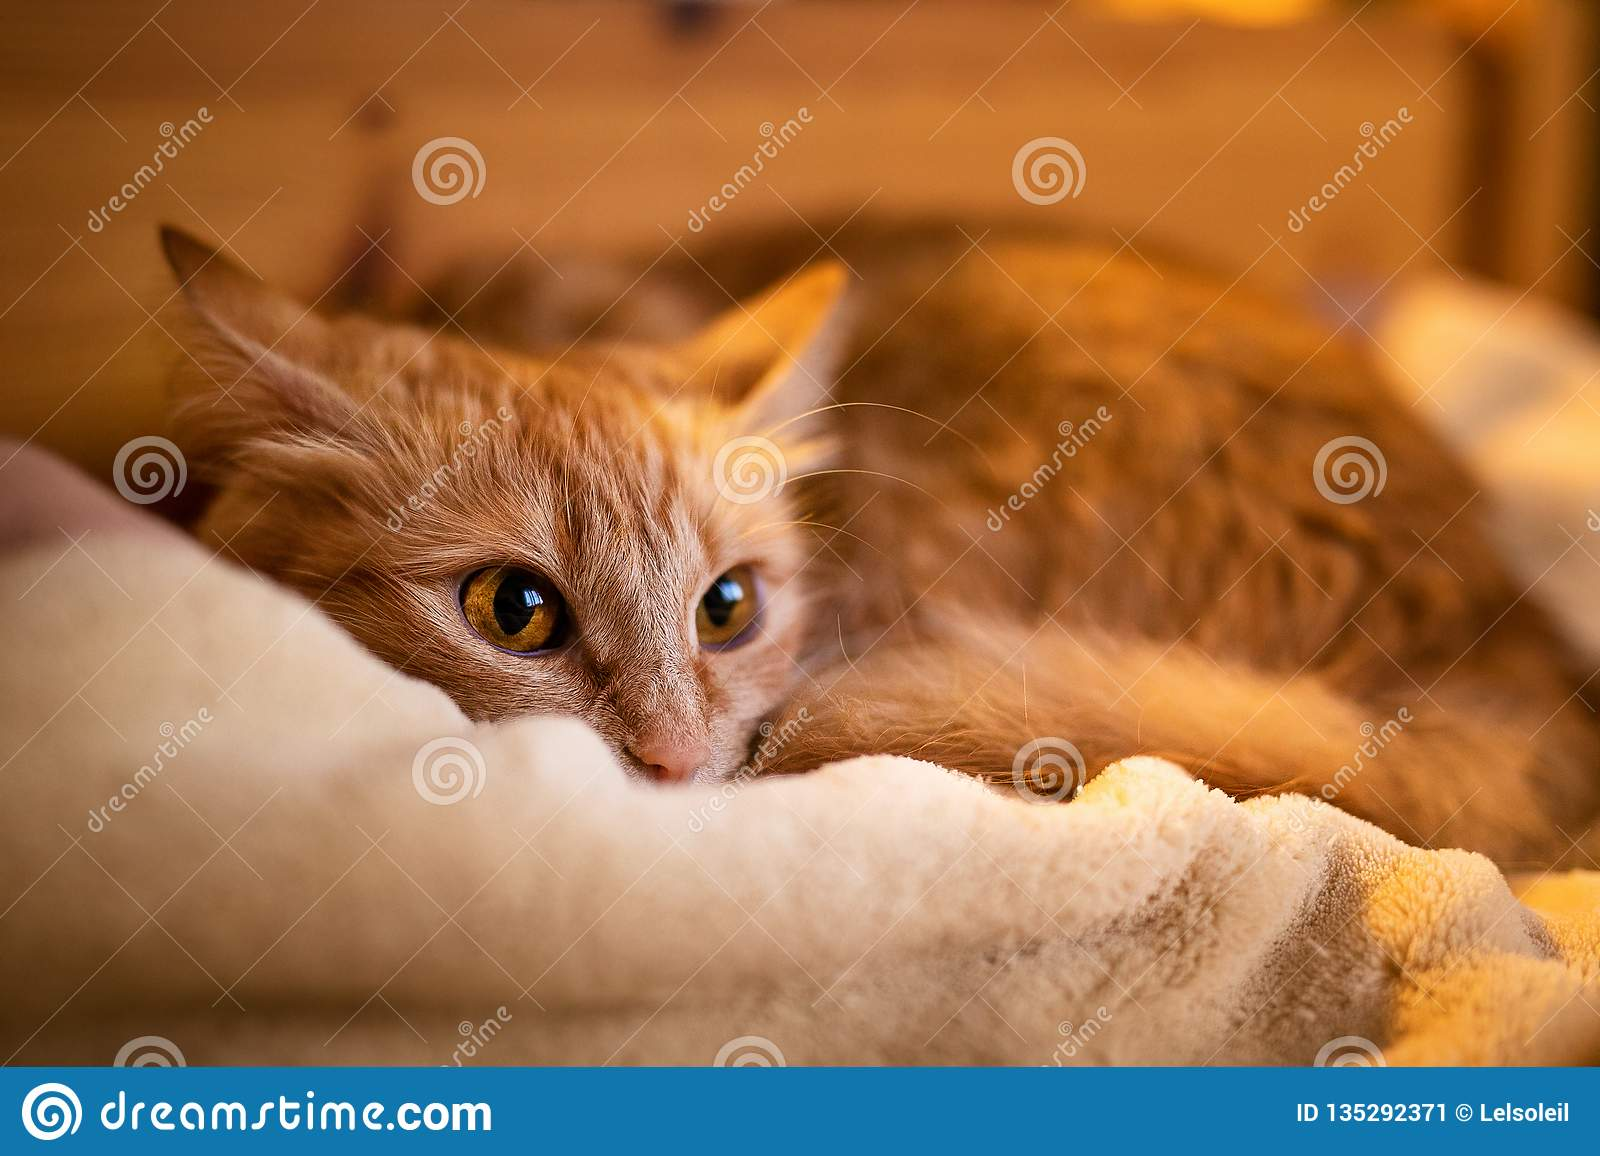 Ginger little cat sleeping at home